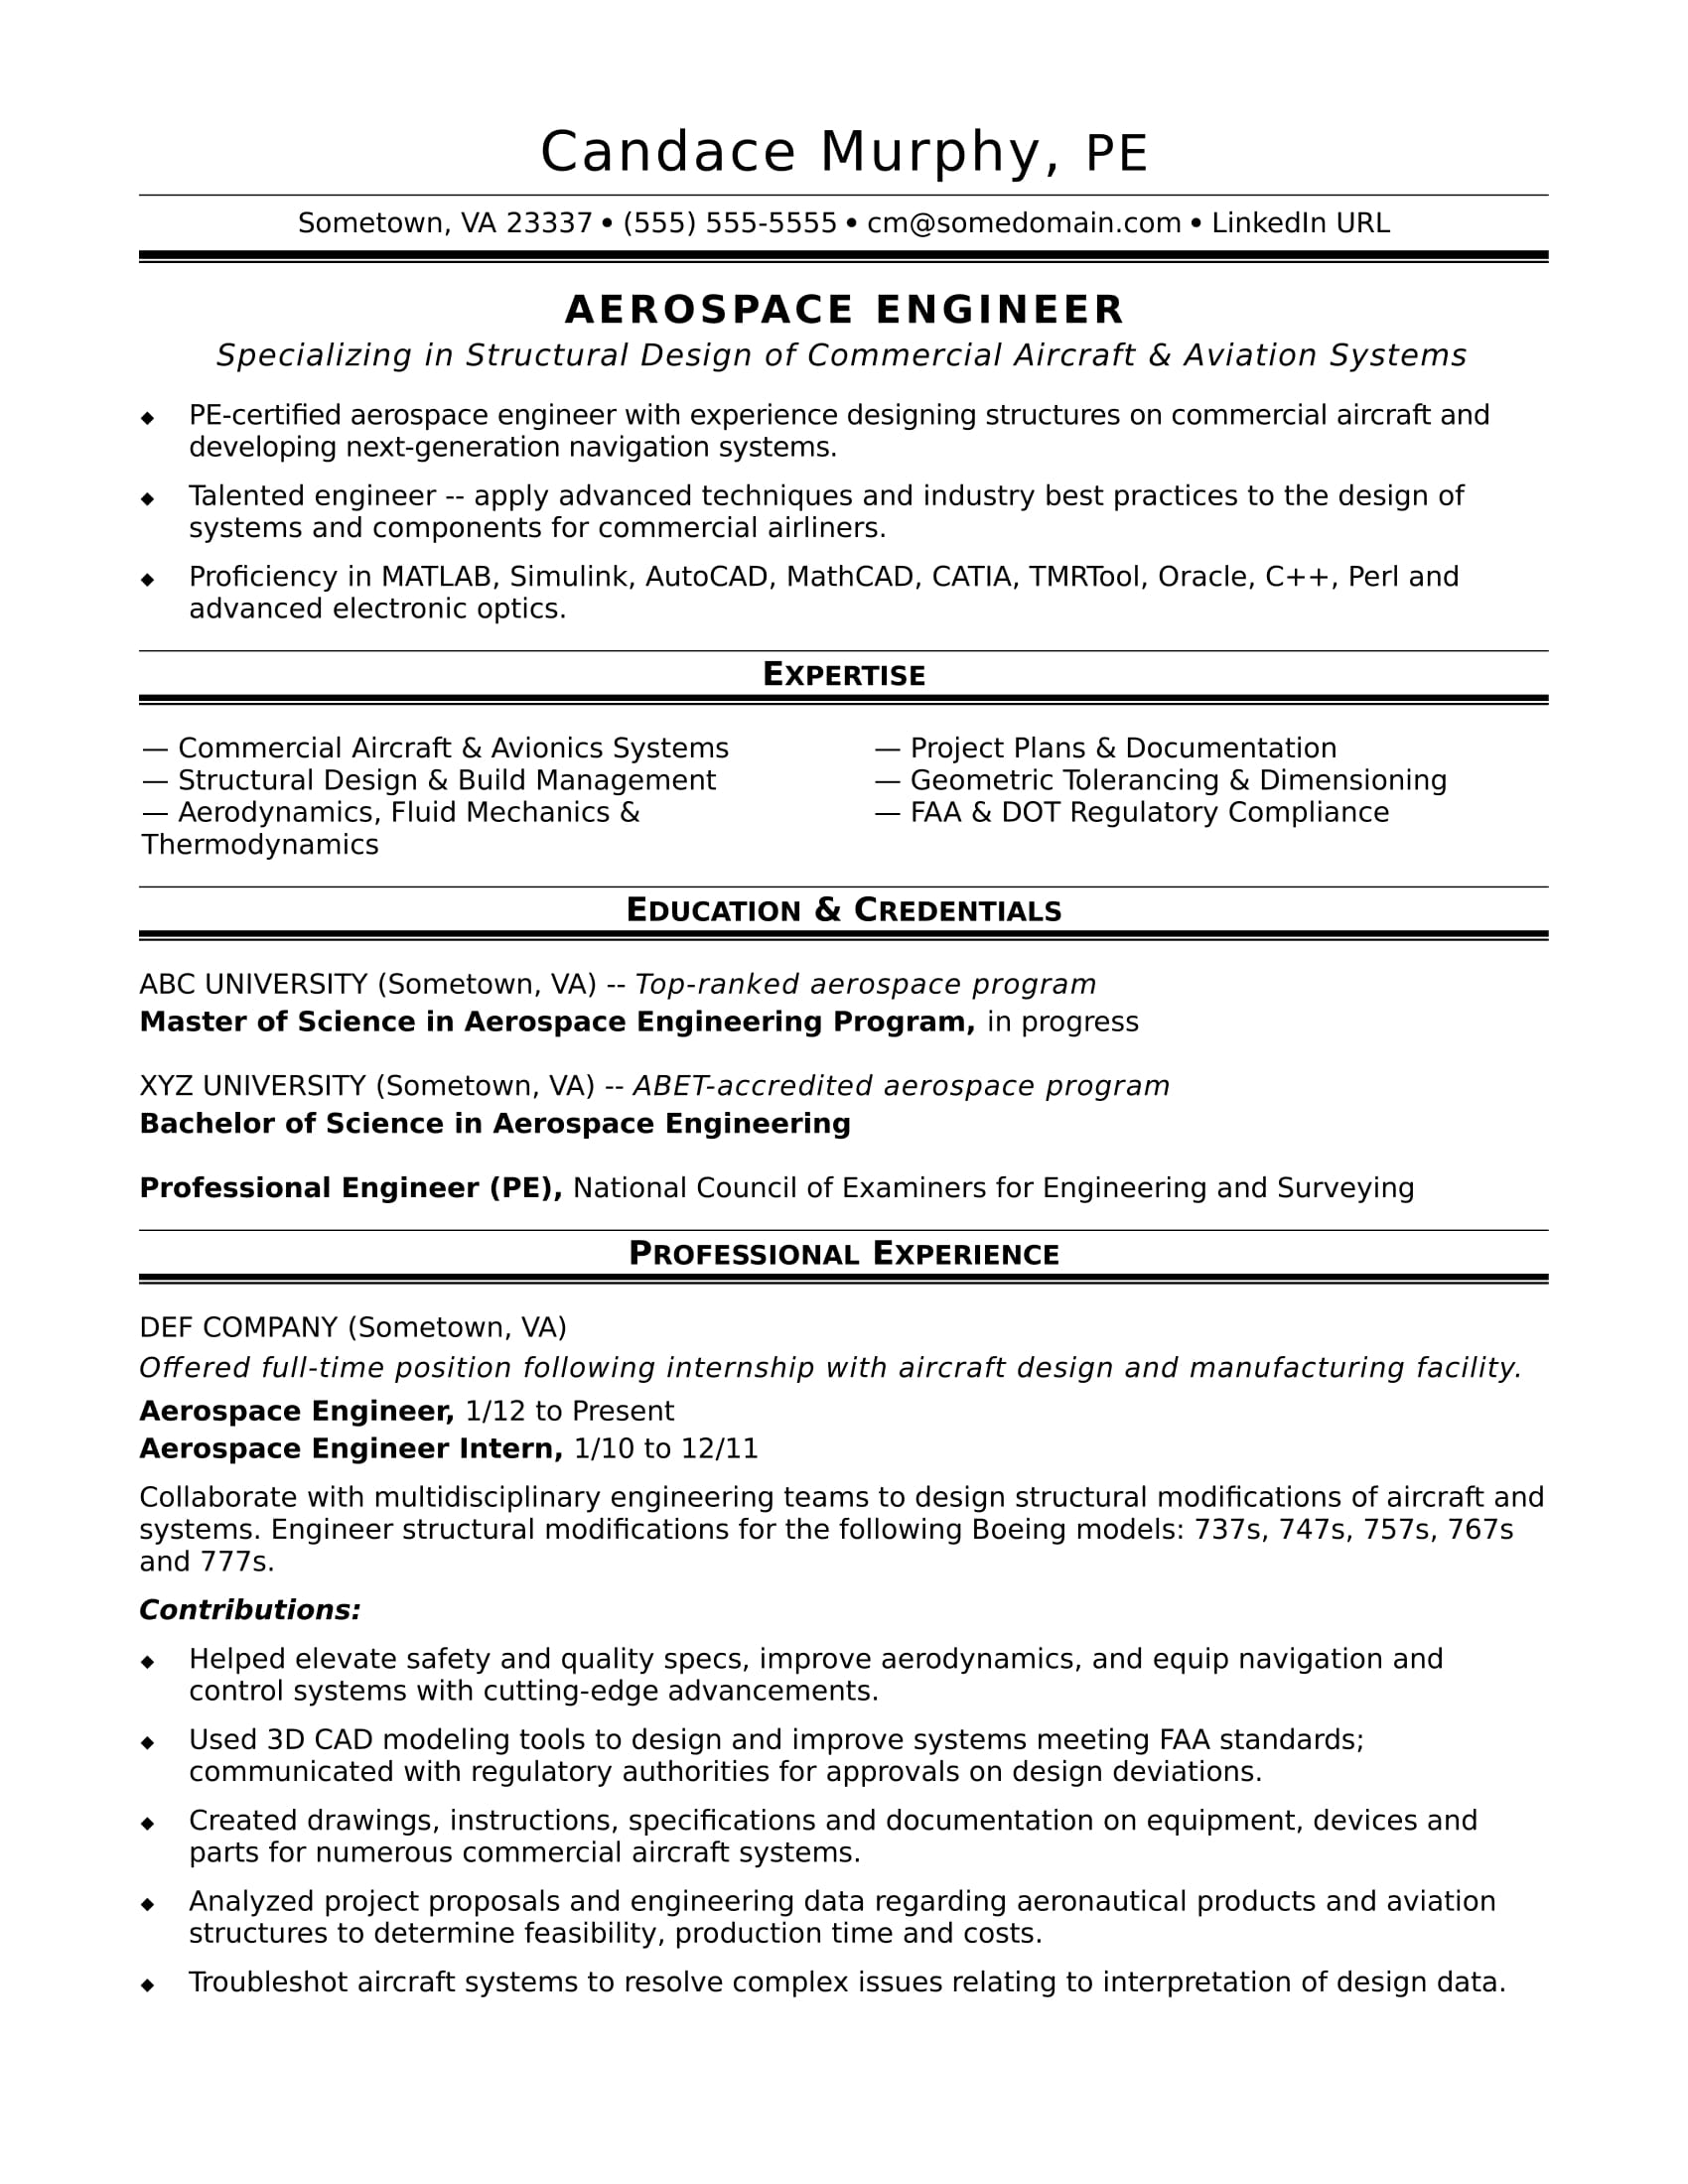 Sample Resume For A Midlevel Aerospace Engineer Inside Aerospace Engineer Resume